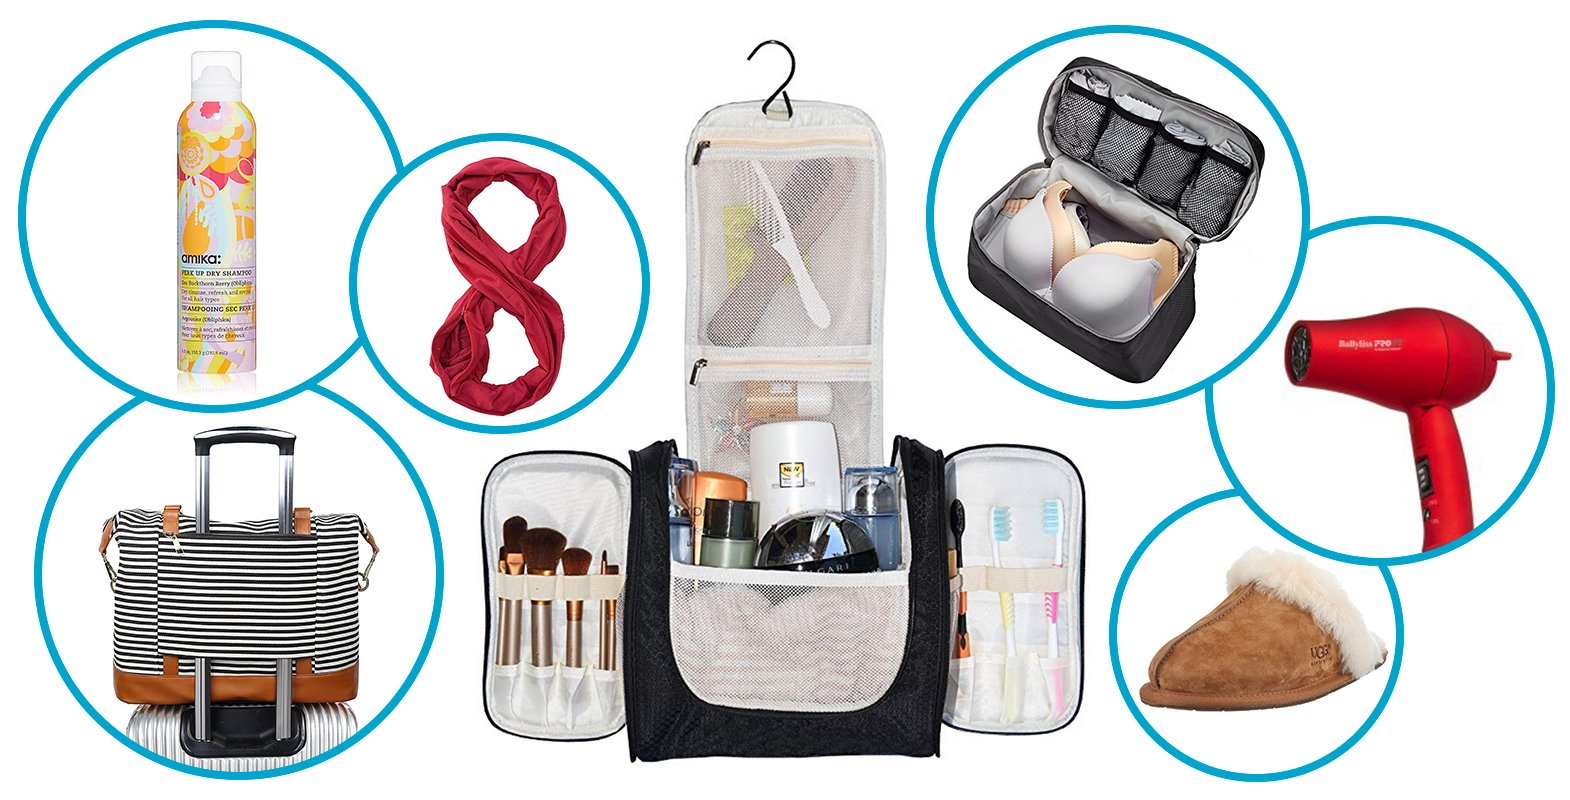 92952f4fcf86 15+ Best Travel Accessories for Women in 2019 (with Prices & Photos ...